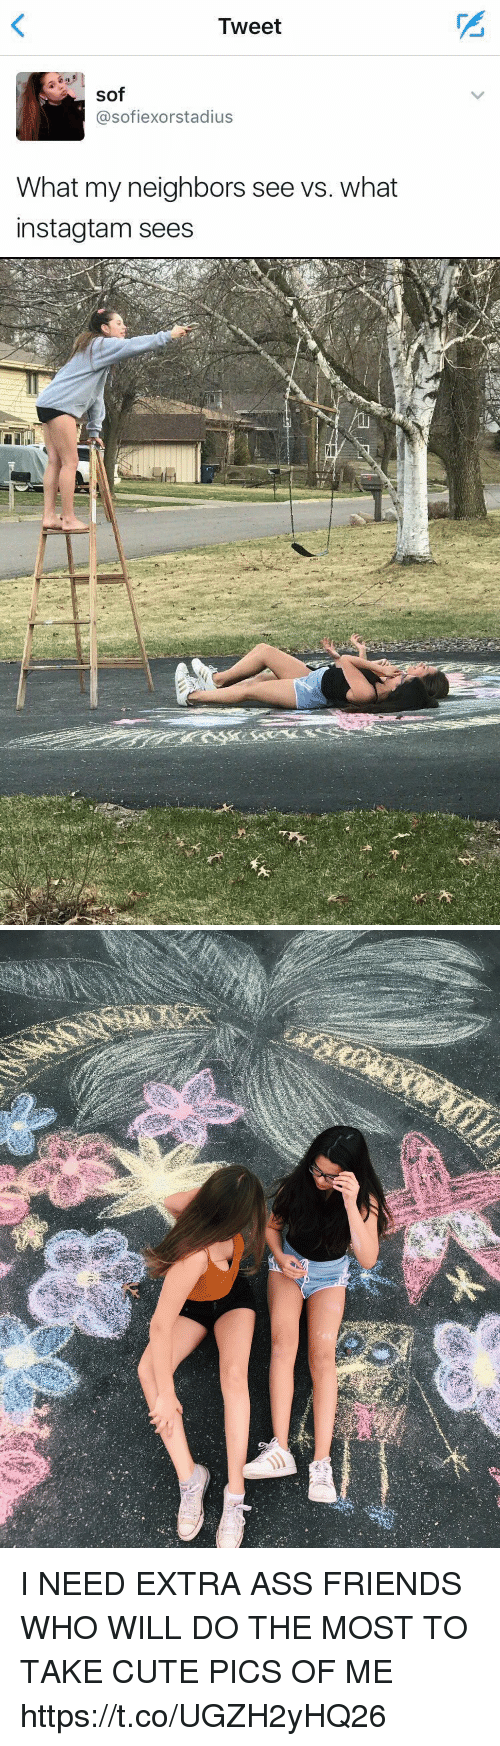 Ass, Cute, and Friends: Tweet  sof  asofiexorstadius  What my neighbors see vs. what  instagtam sees I NEED EXTRA ASS FRIENDS WHO WILL DO THE MOST TO TAKE CUTE PICS OF ME https://t.co/UGZH2yHQ26